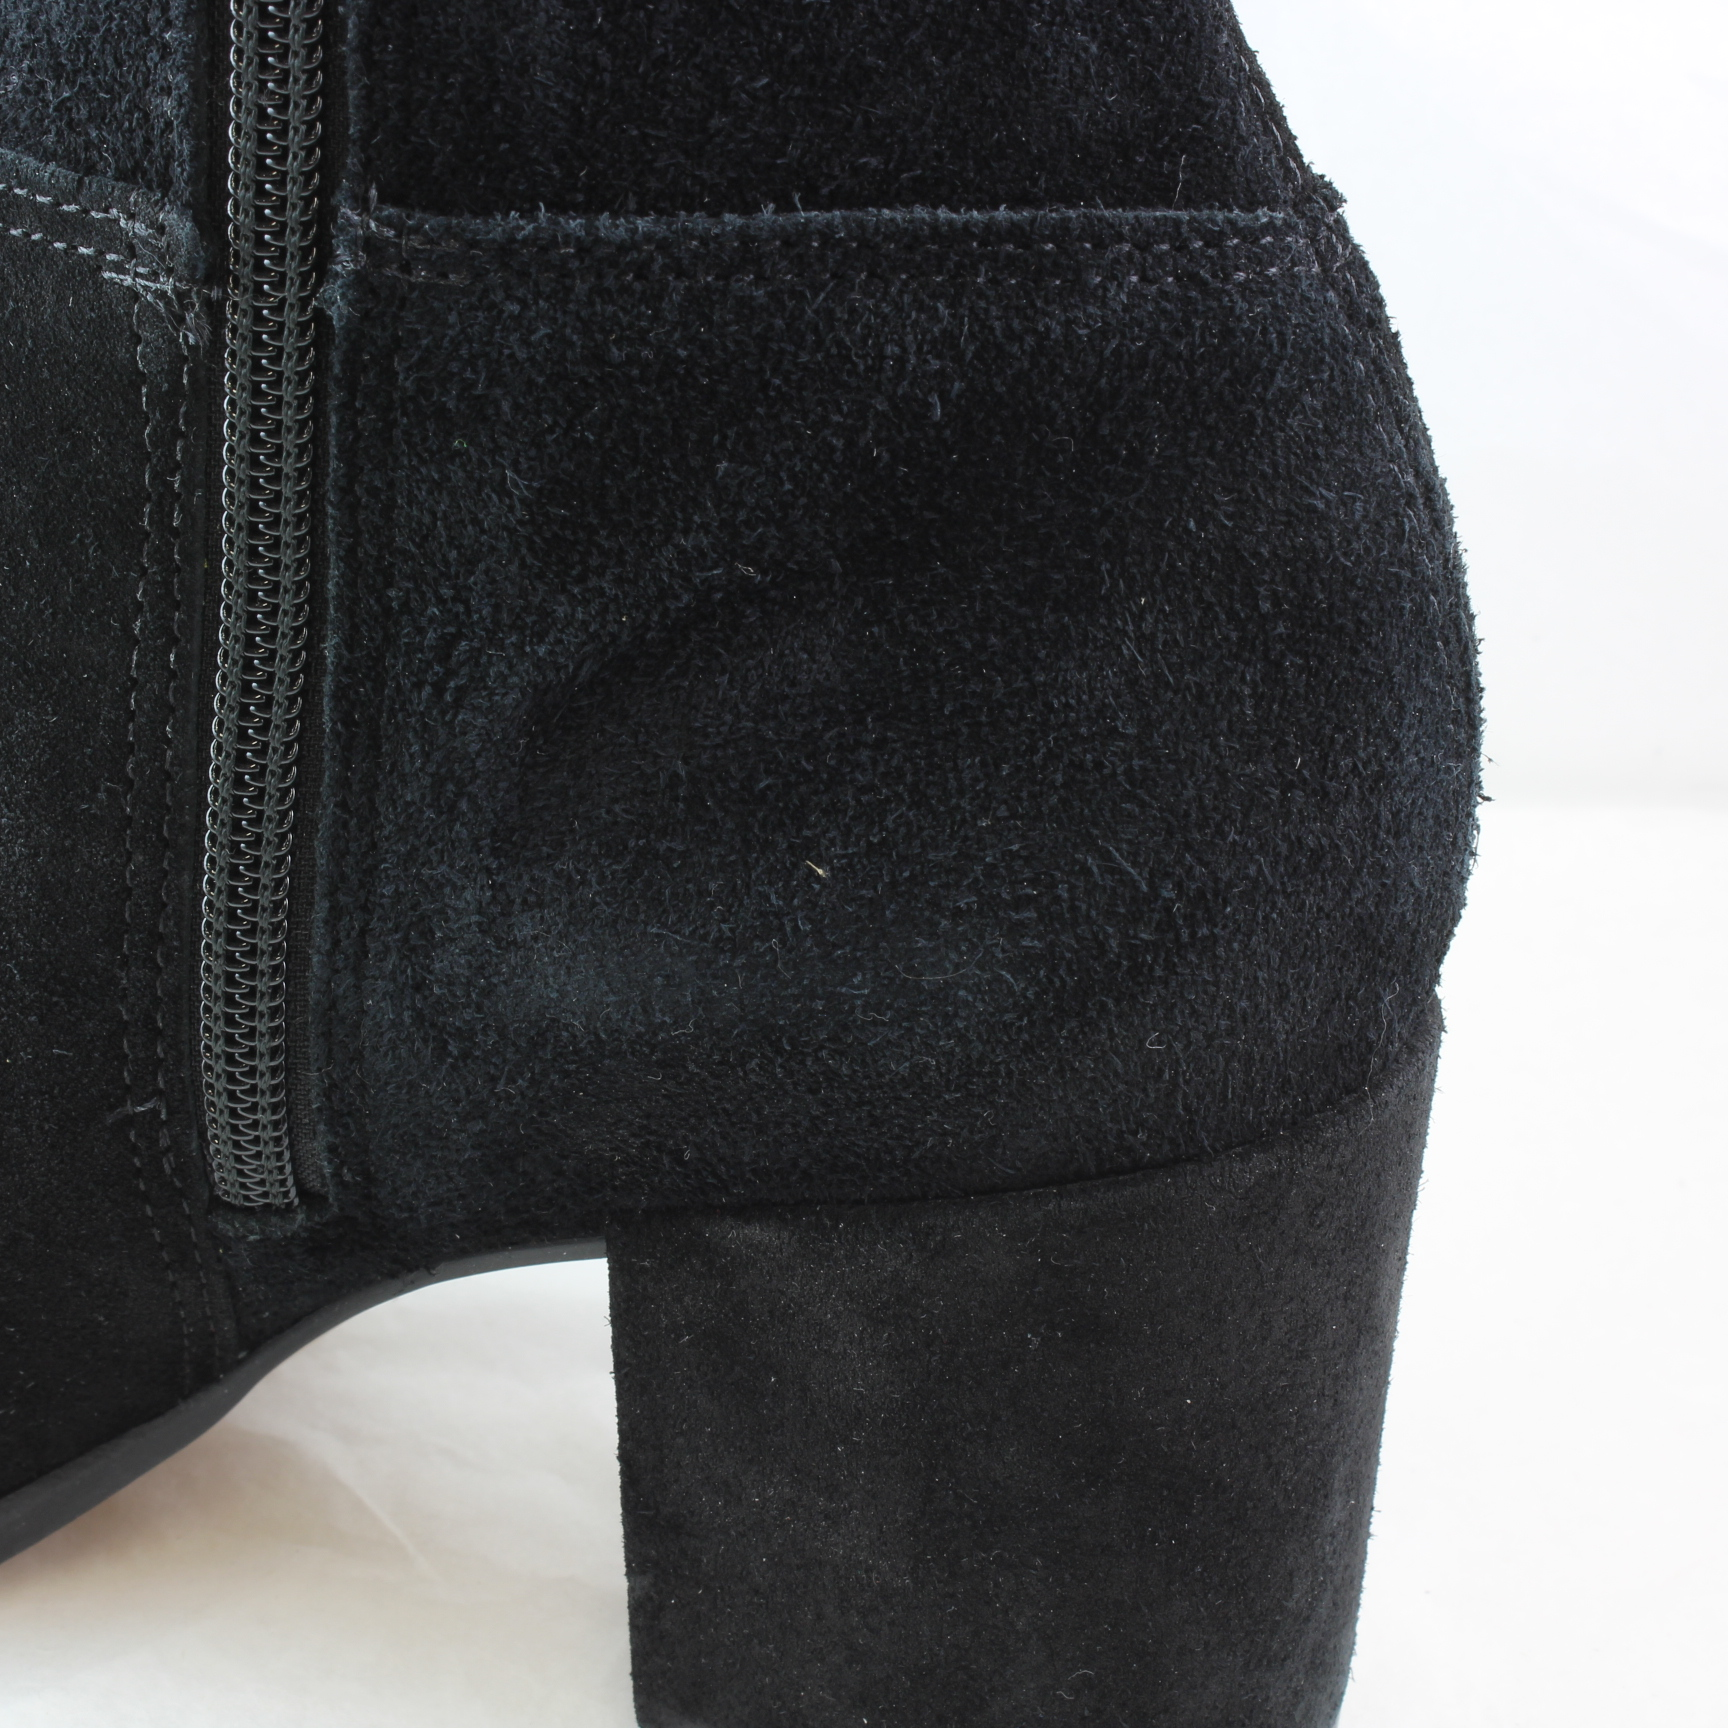 5e9e88ab4f5 Details about Womens Office Know It All Block Heel Knee Boots BLACK SUEDE 2  Boots *Ex Display*